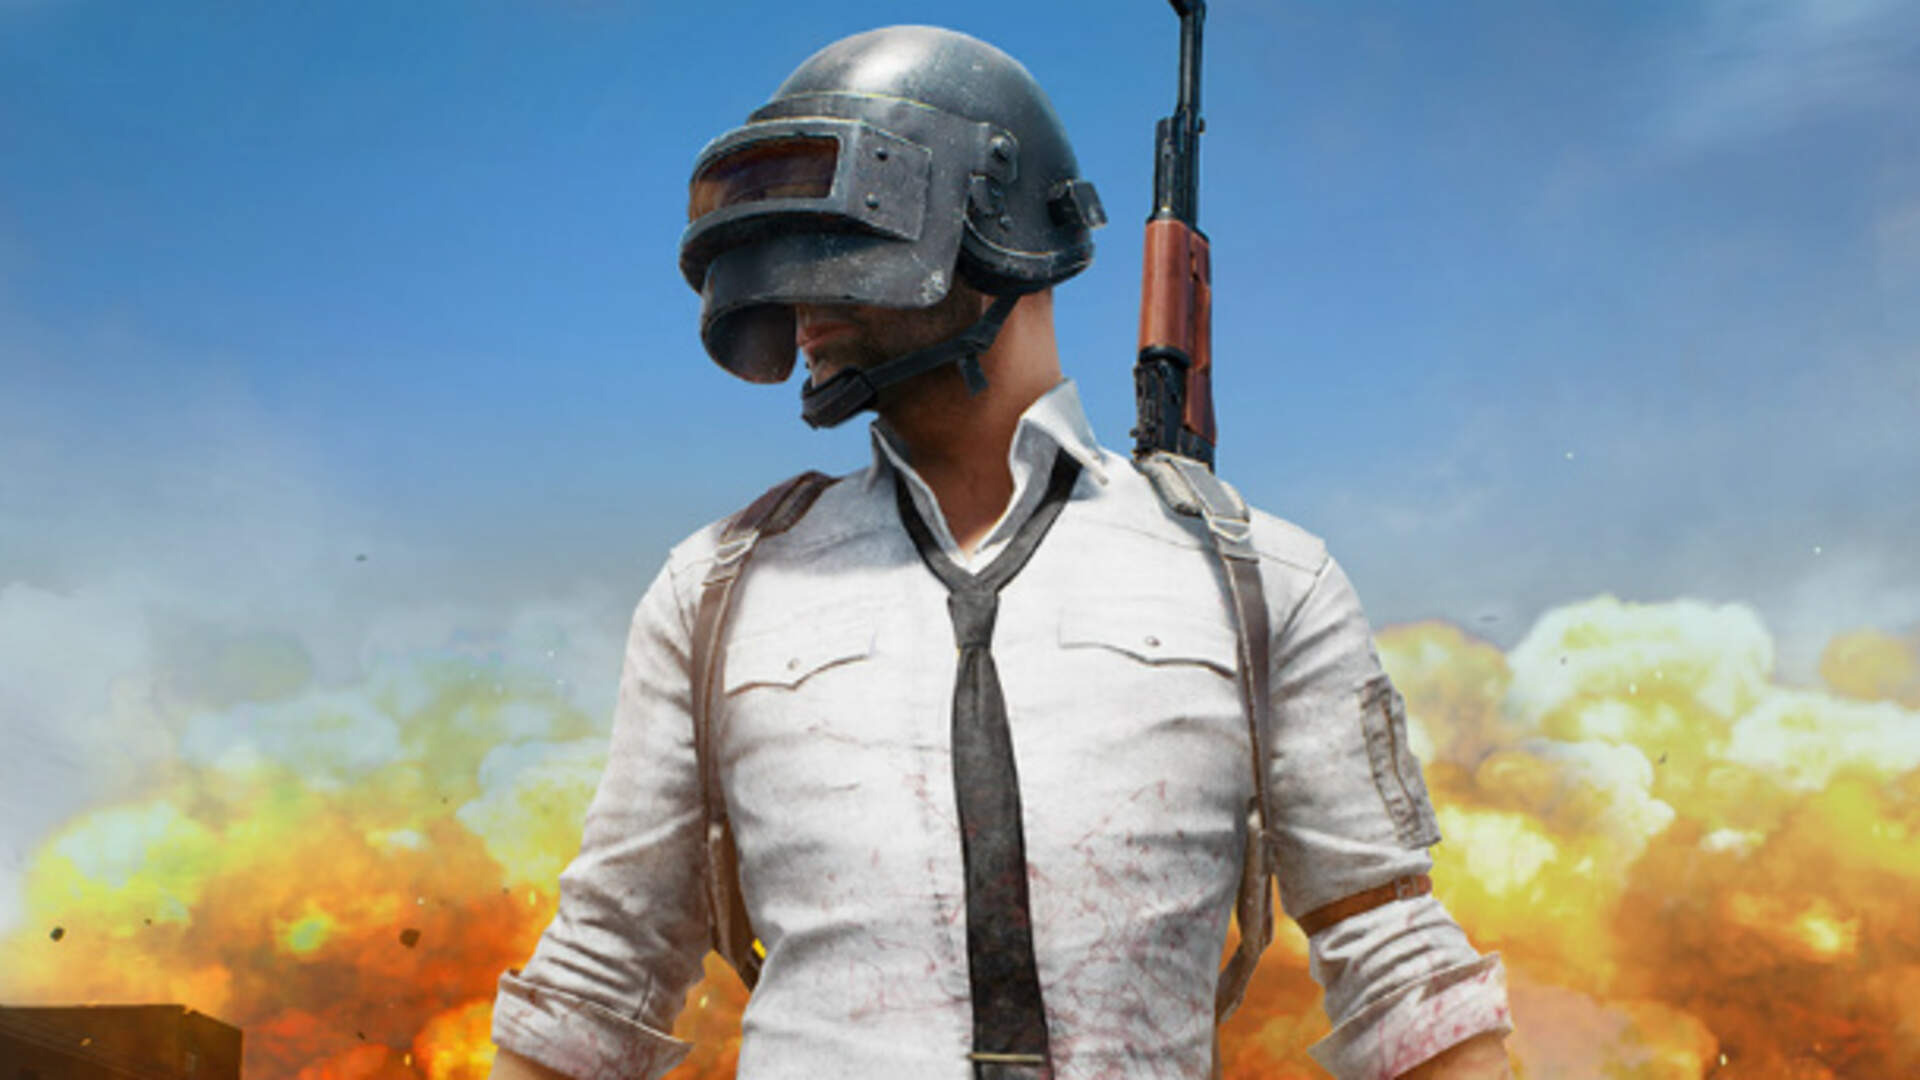 2018 Is the Year PUBG Proves It Has Staying Power